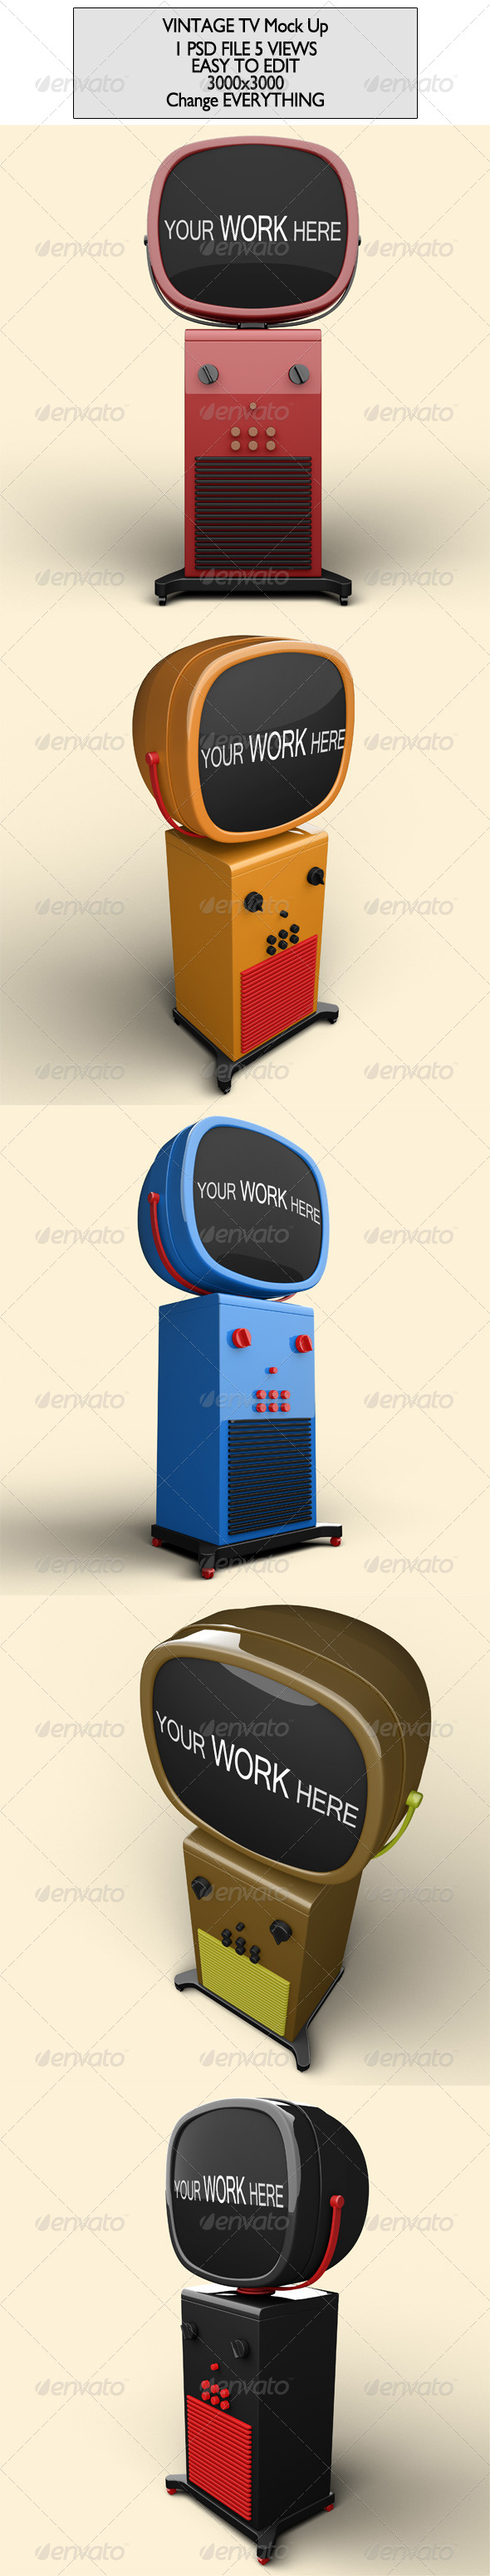 GraphicRiver Vintage Tv Mock Up 7260112